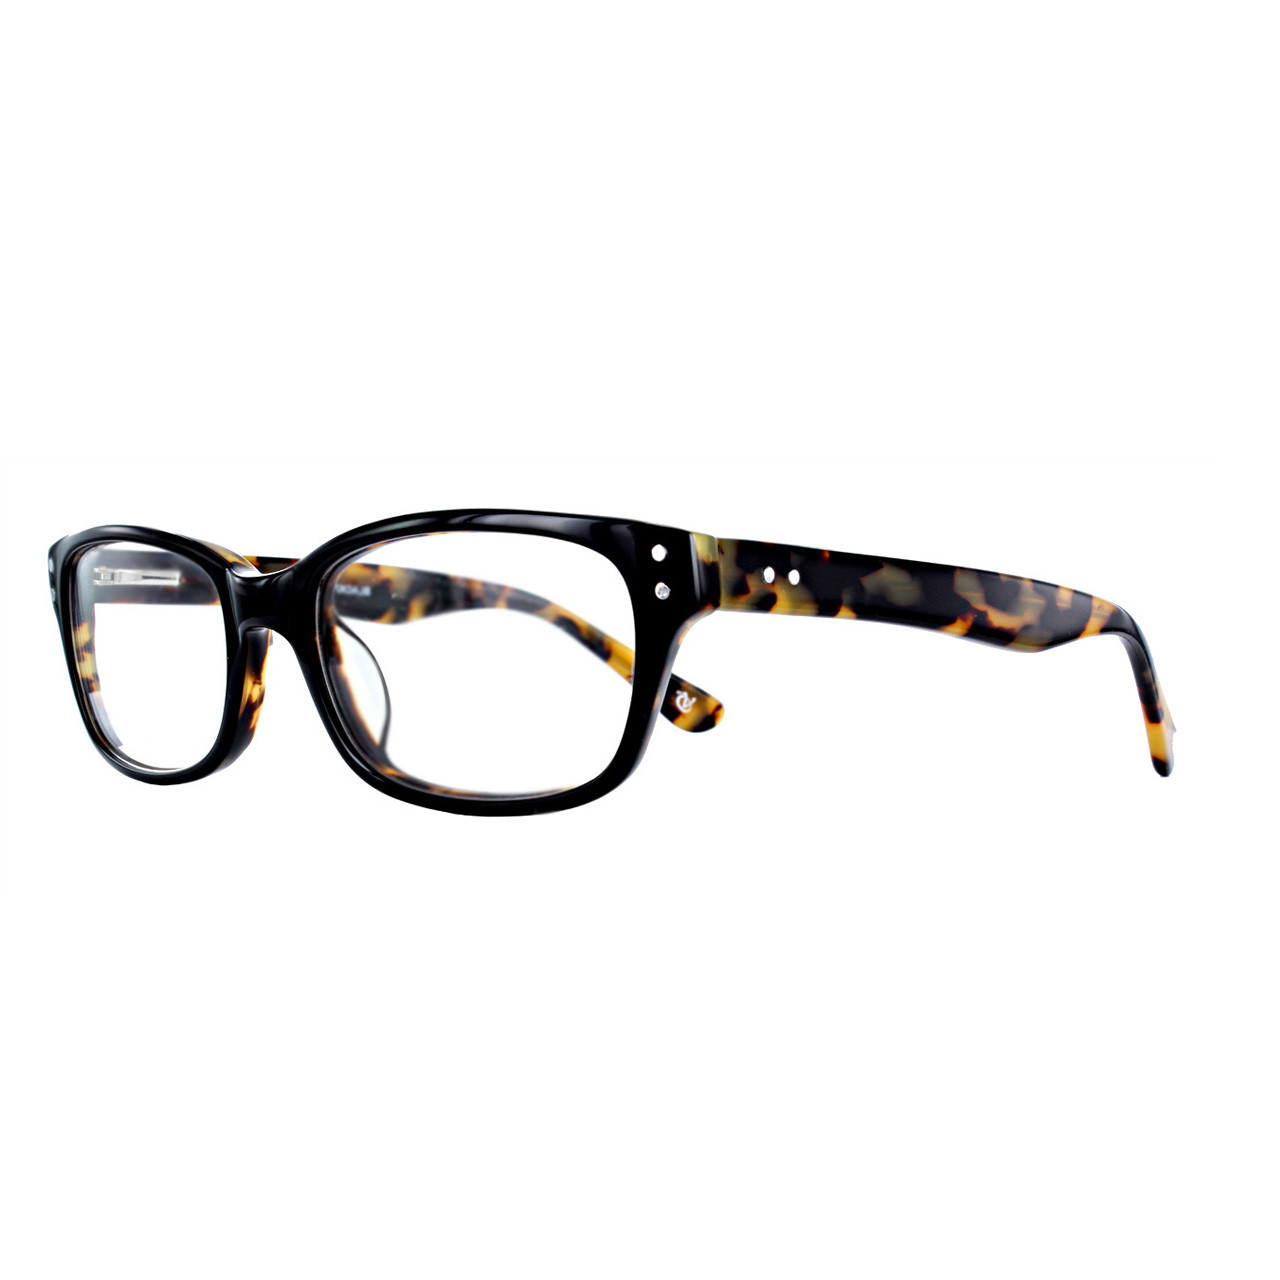 GEEK Eyewear Geek VO2 VICTOR ORTIZ Collection